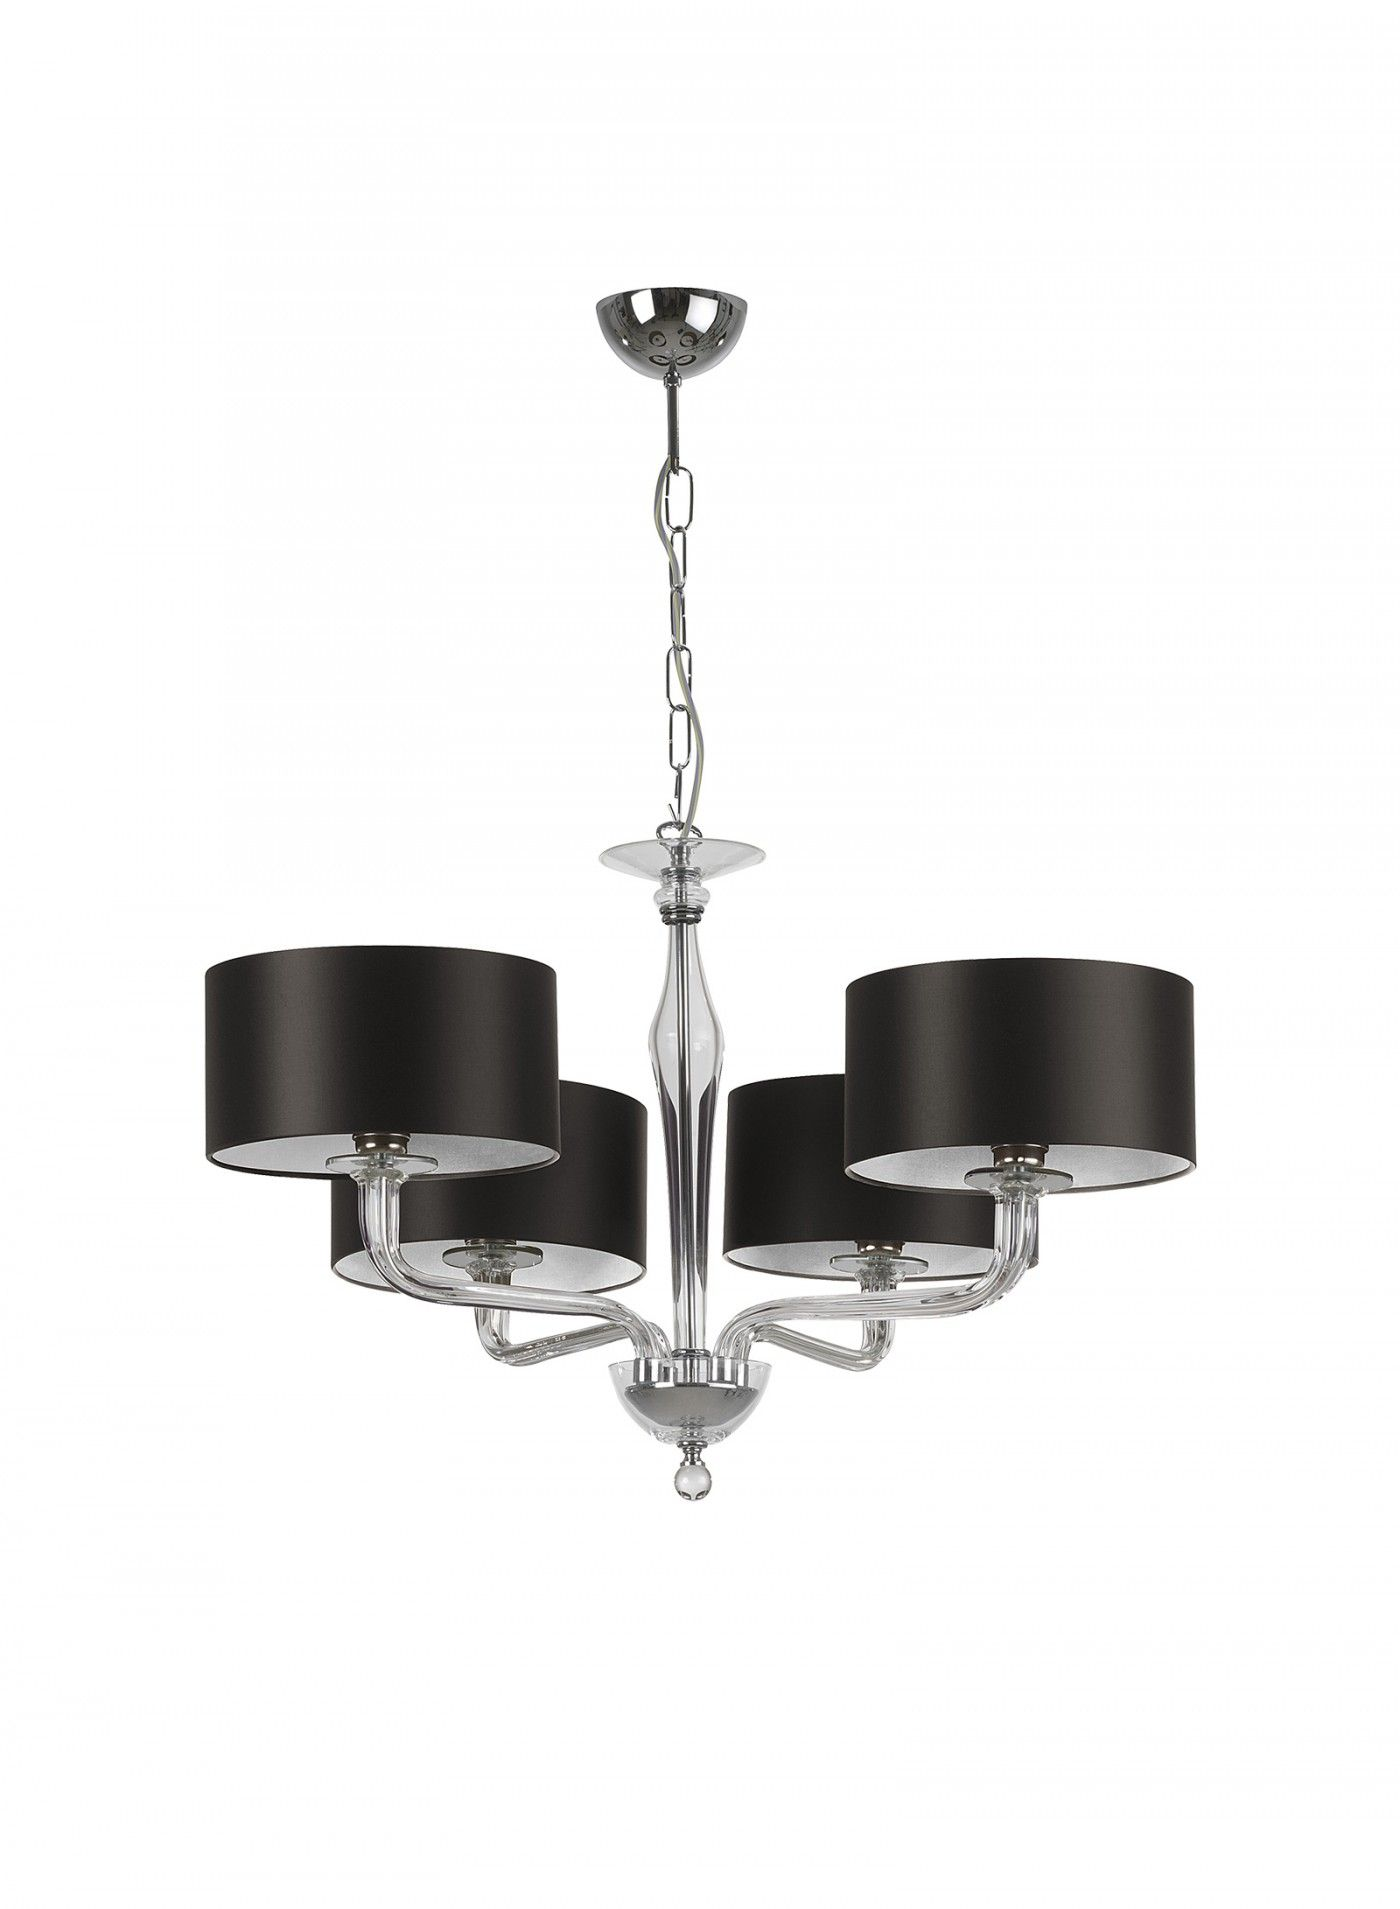 Czarina clear 4 arm ceiling light glass crystal ceiling and arms czarina clear 4 arm beautiful glass crystal pendant ceiling light available with clear smoke or gold coloured glass and chrome metalwork aloadofball Gallery